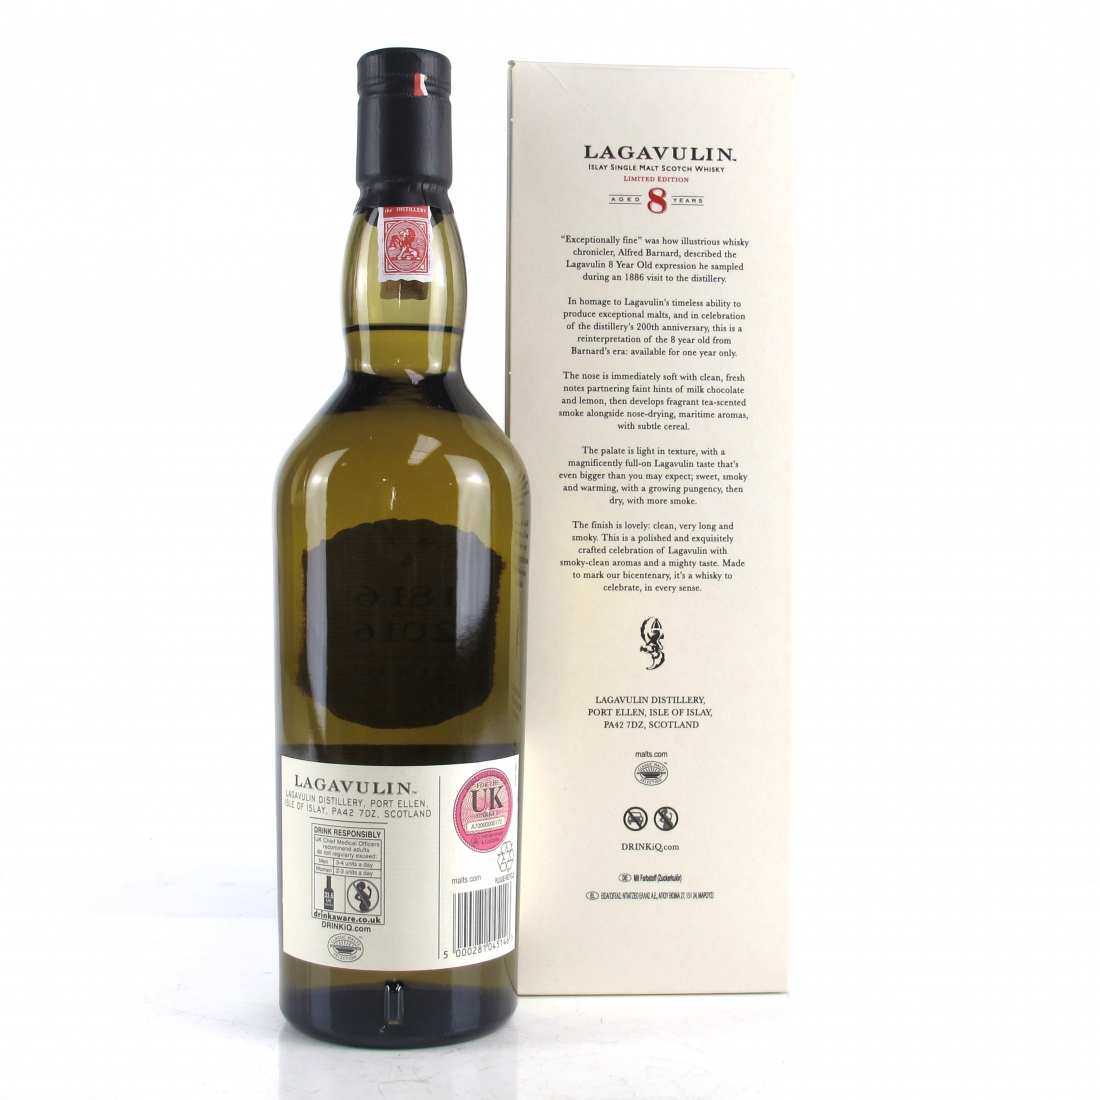 Lagavulin 8 Year Old 200th Anniversary